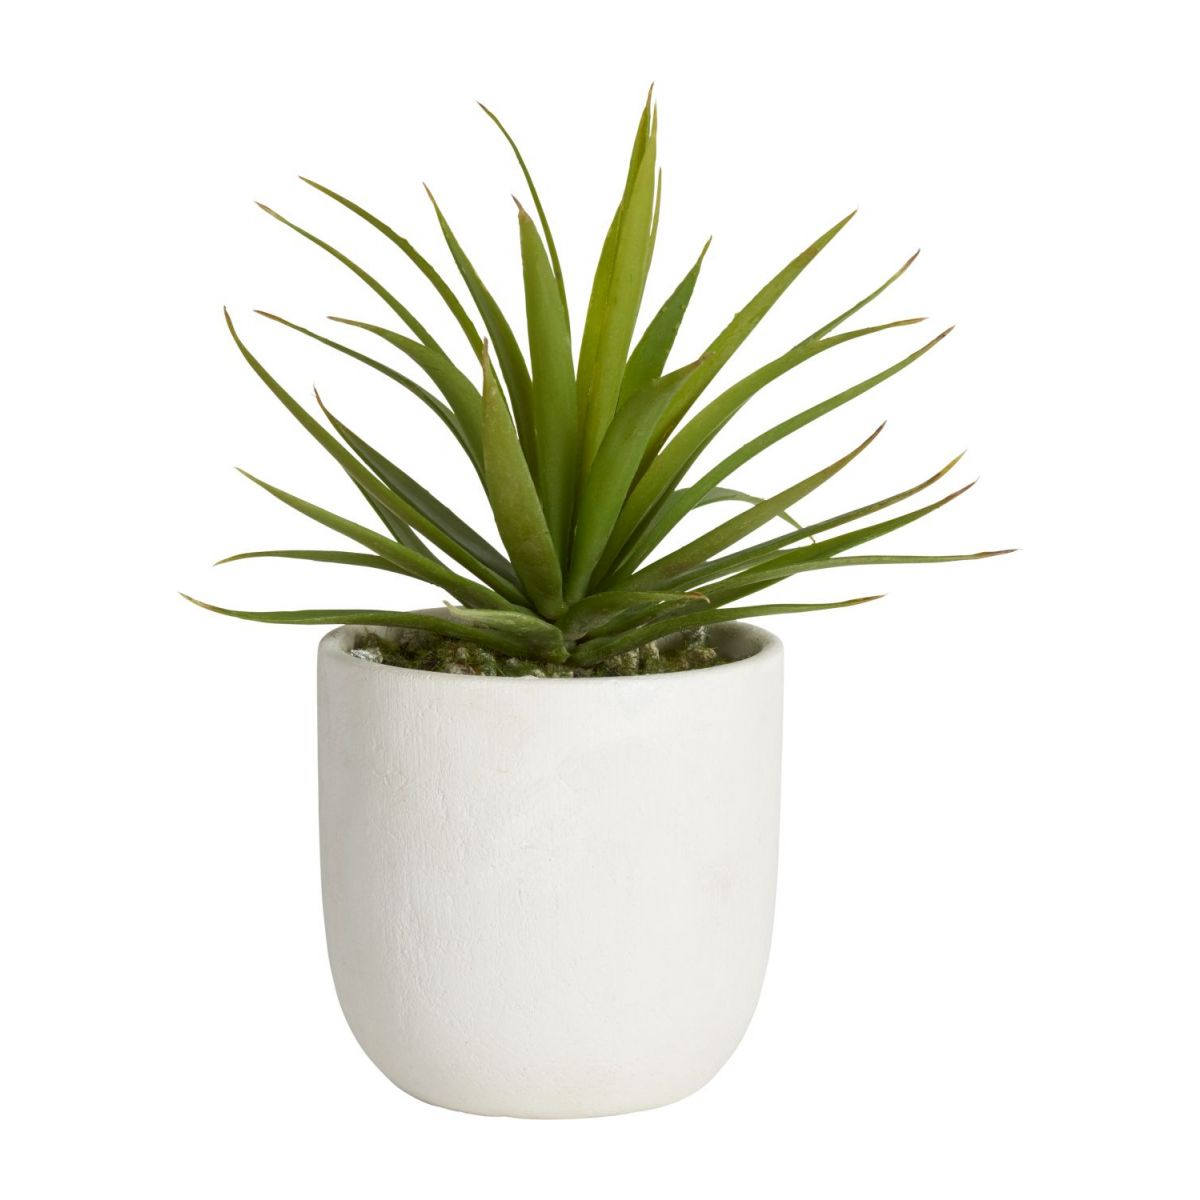 Artificial agave n°1